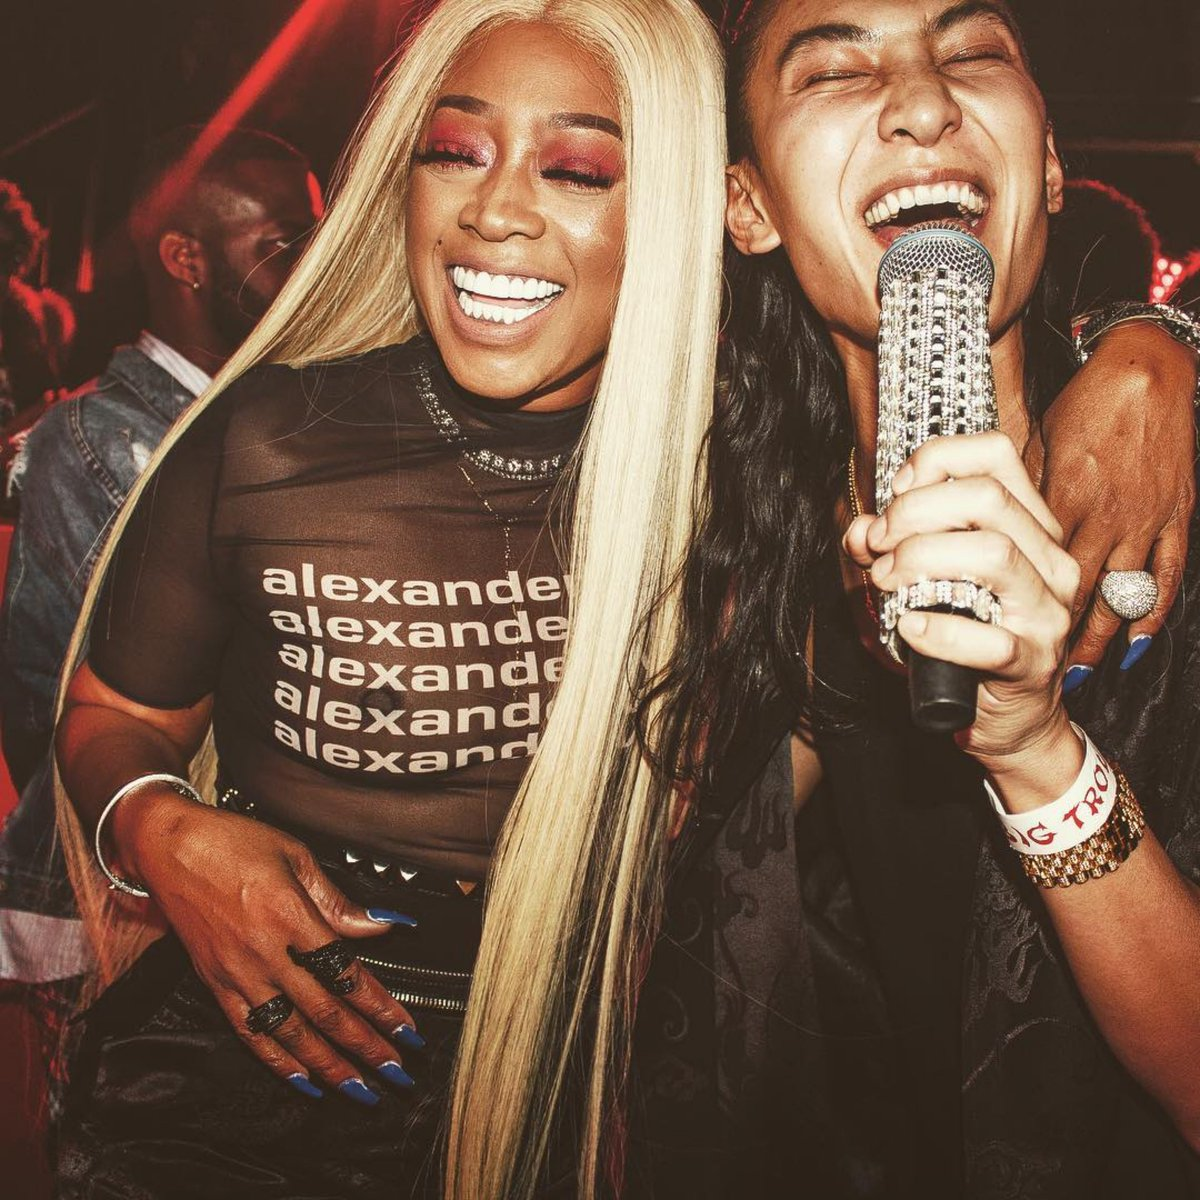 Today's #MondayMotivation is brought to you by @TRINArockstarr and Alex Wang 💯 https://t.co/EZRKf6fTvj